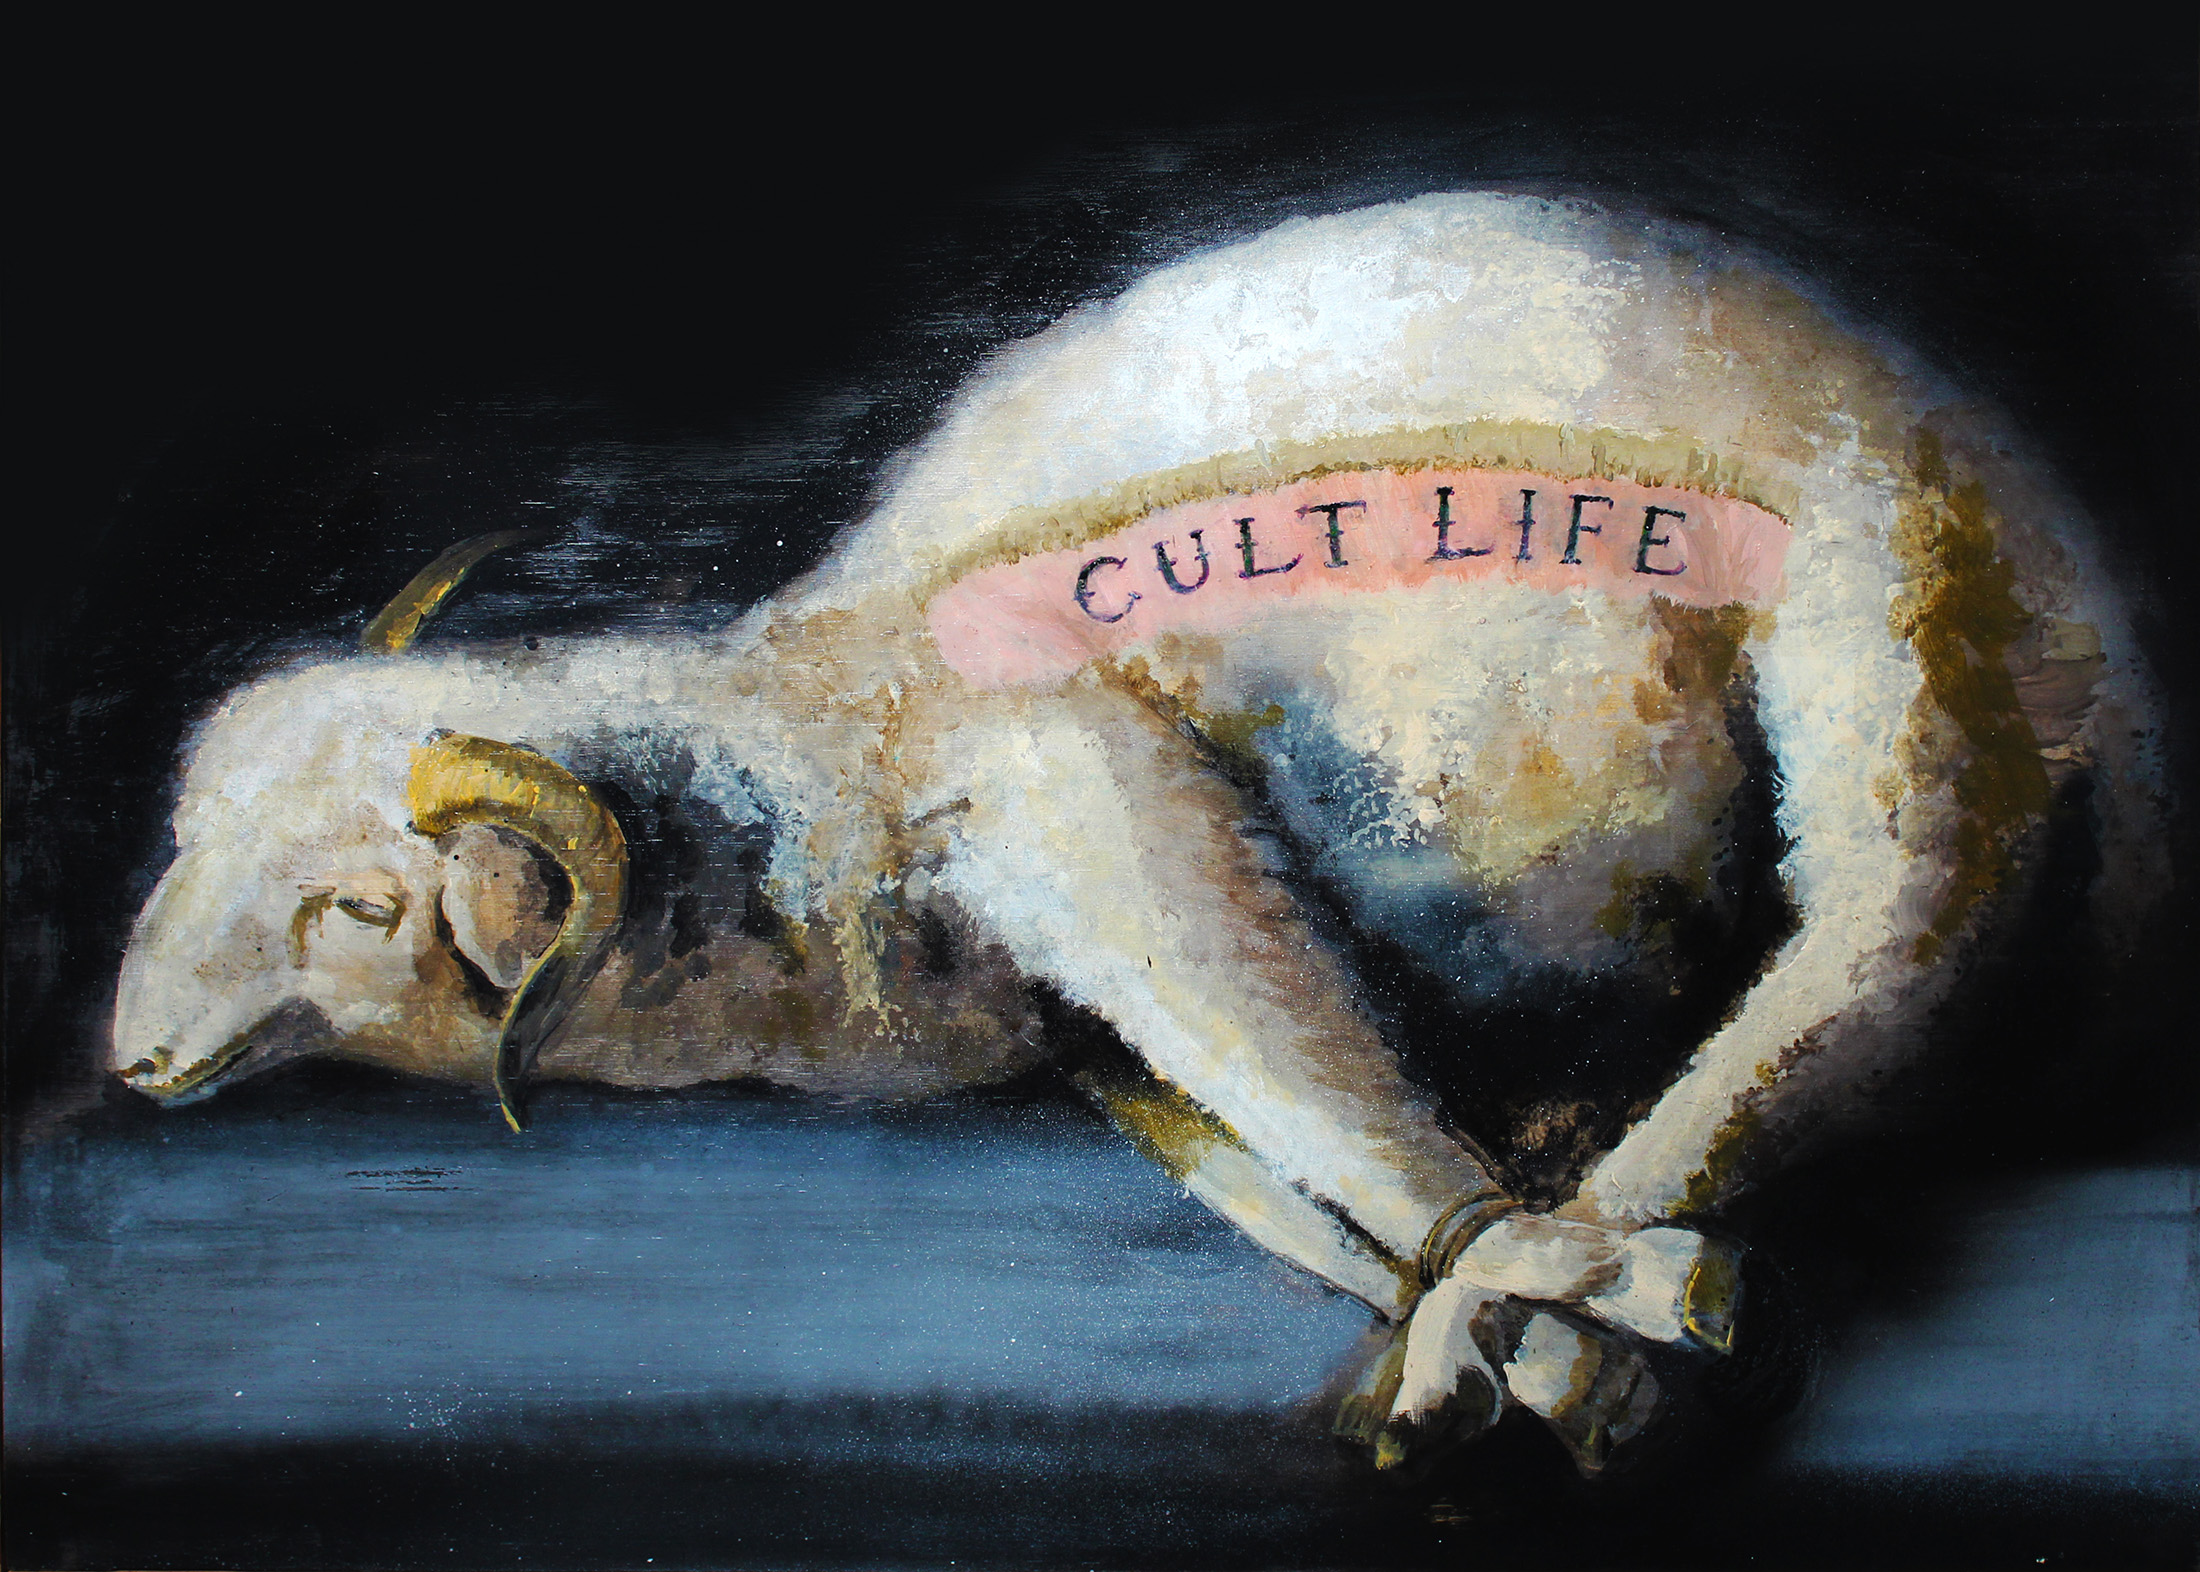 cultlife_new_lores